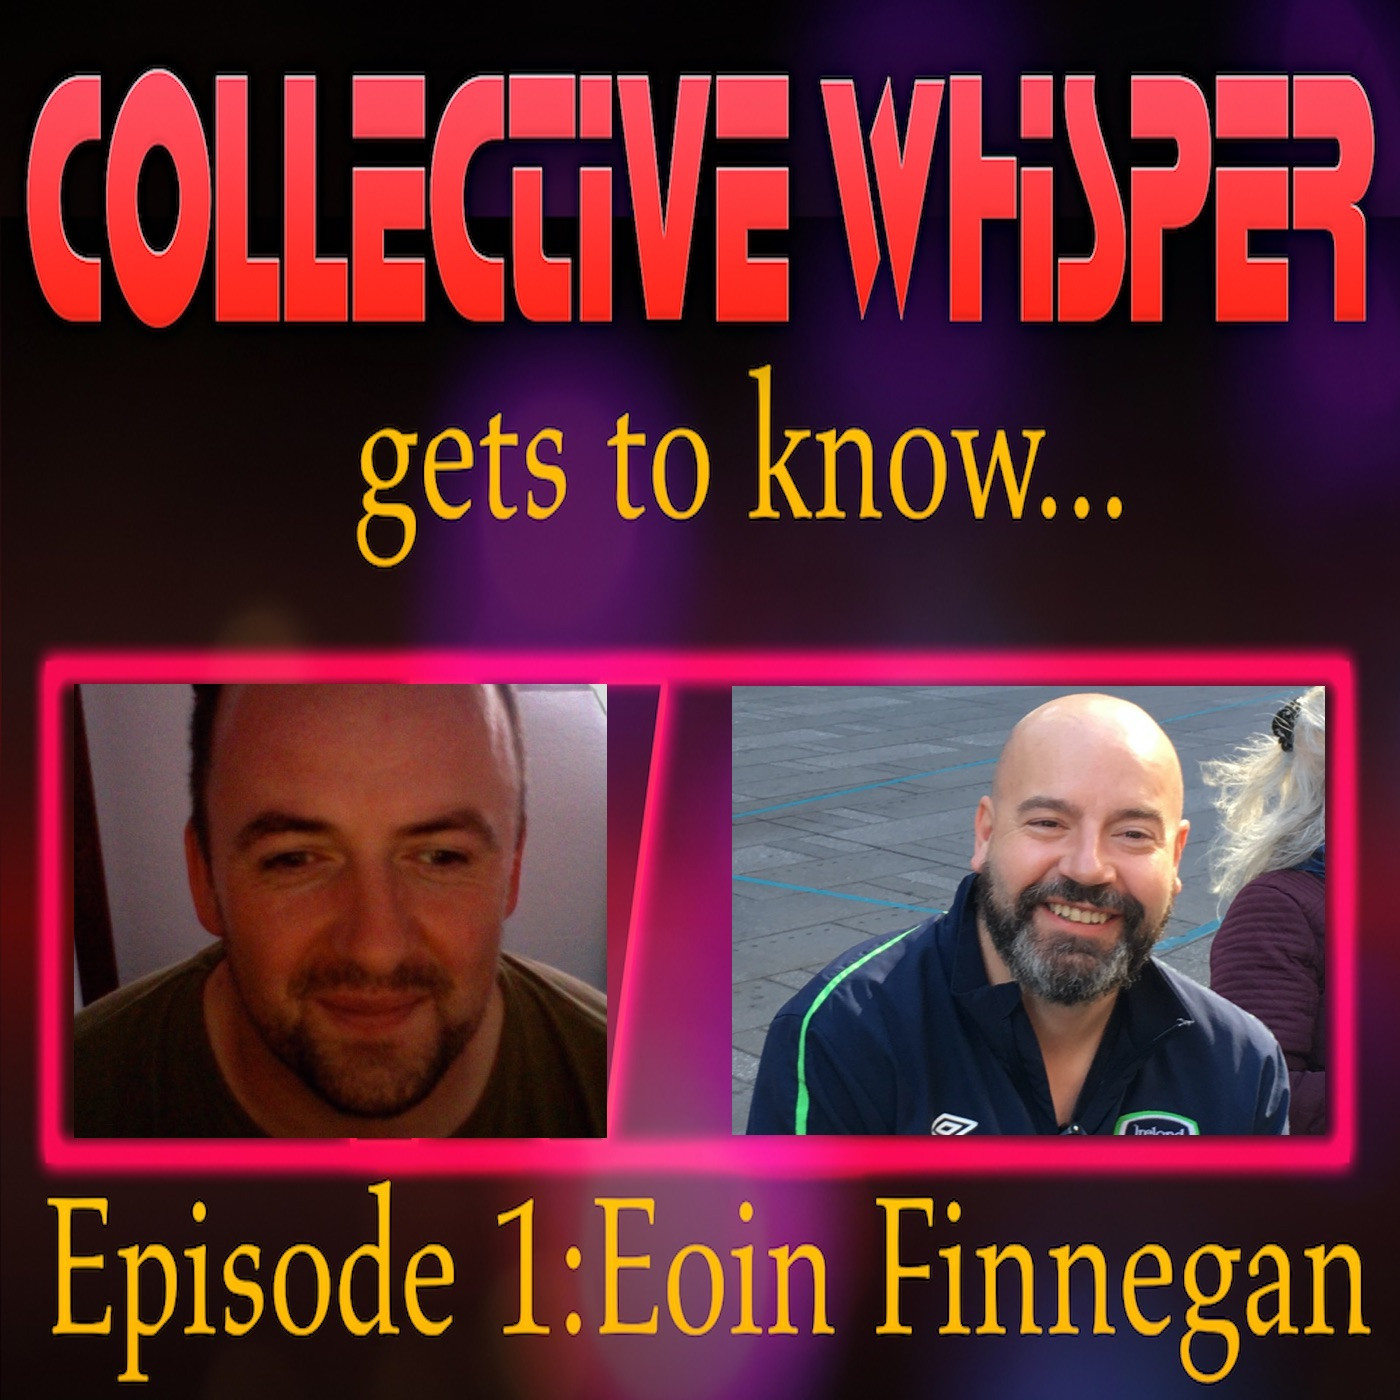 Collective Whisper gets to know.....Eoin finnegan